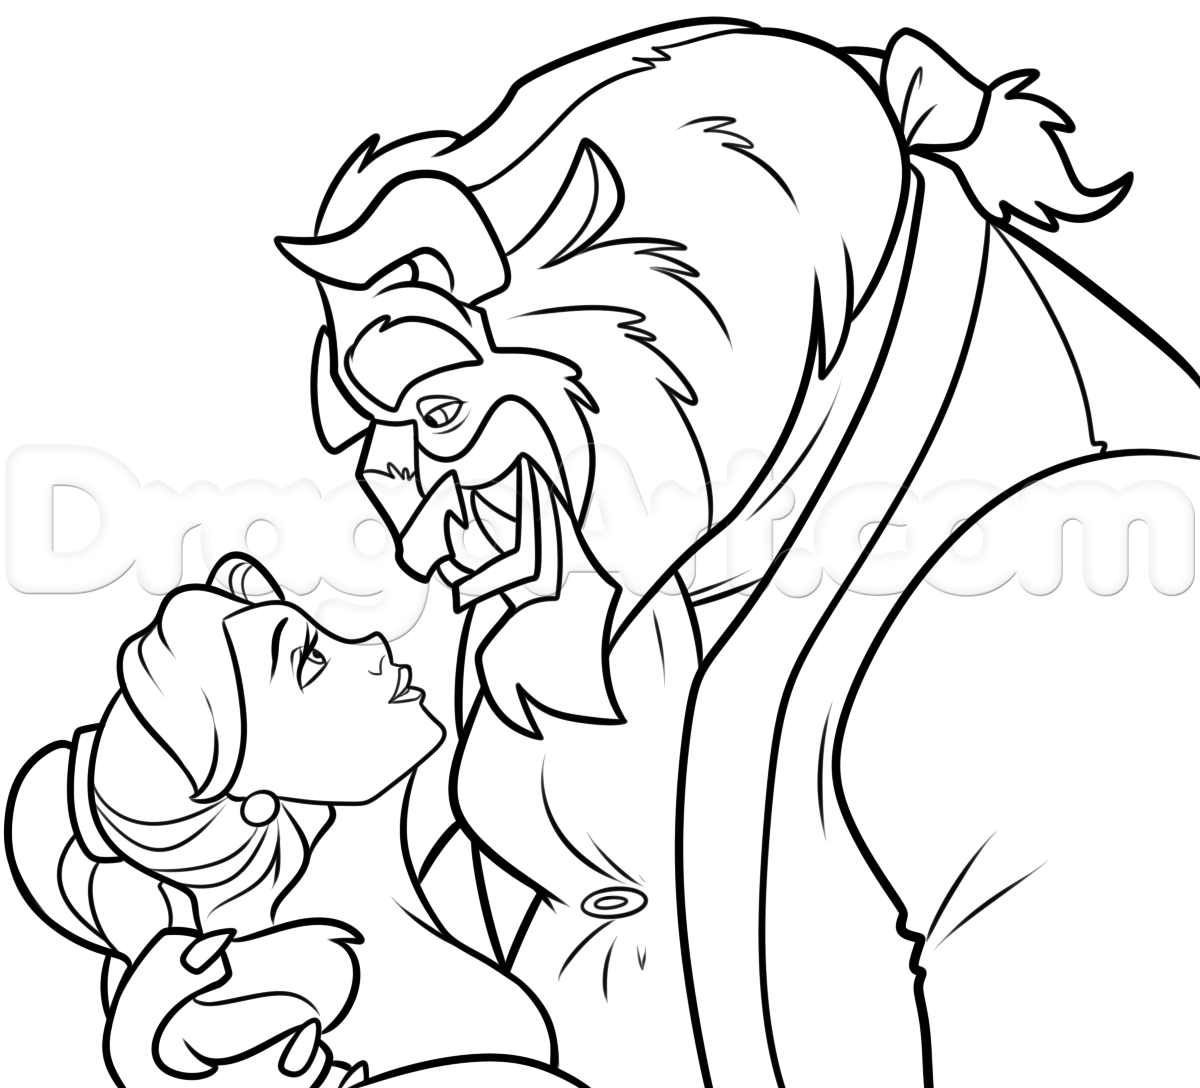 how to draw belle and beast step 10 in 2019 | Belle, beast ...